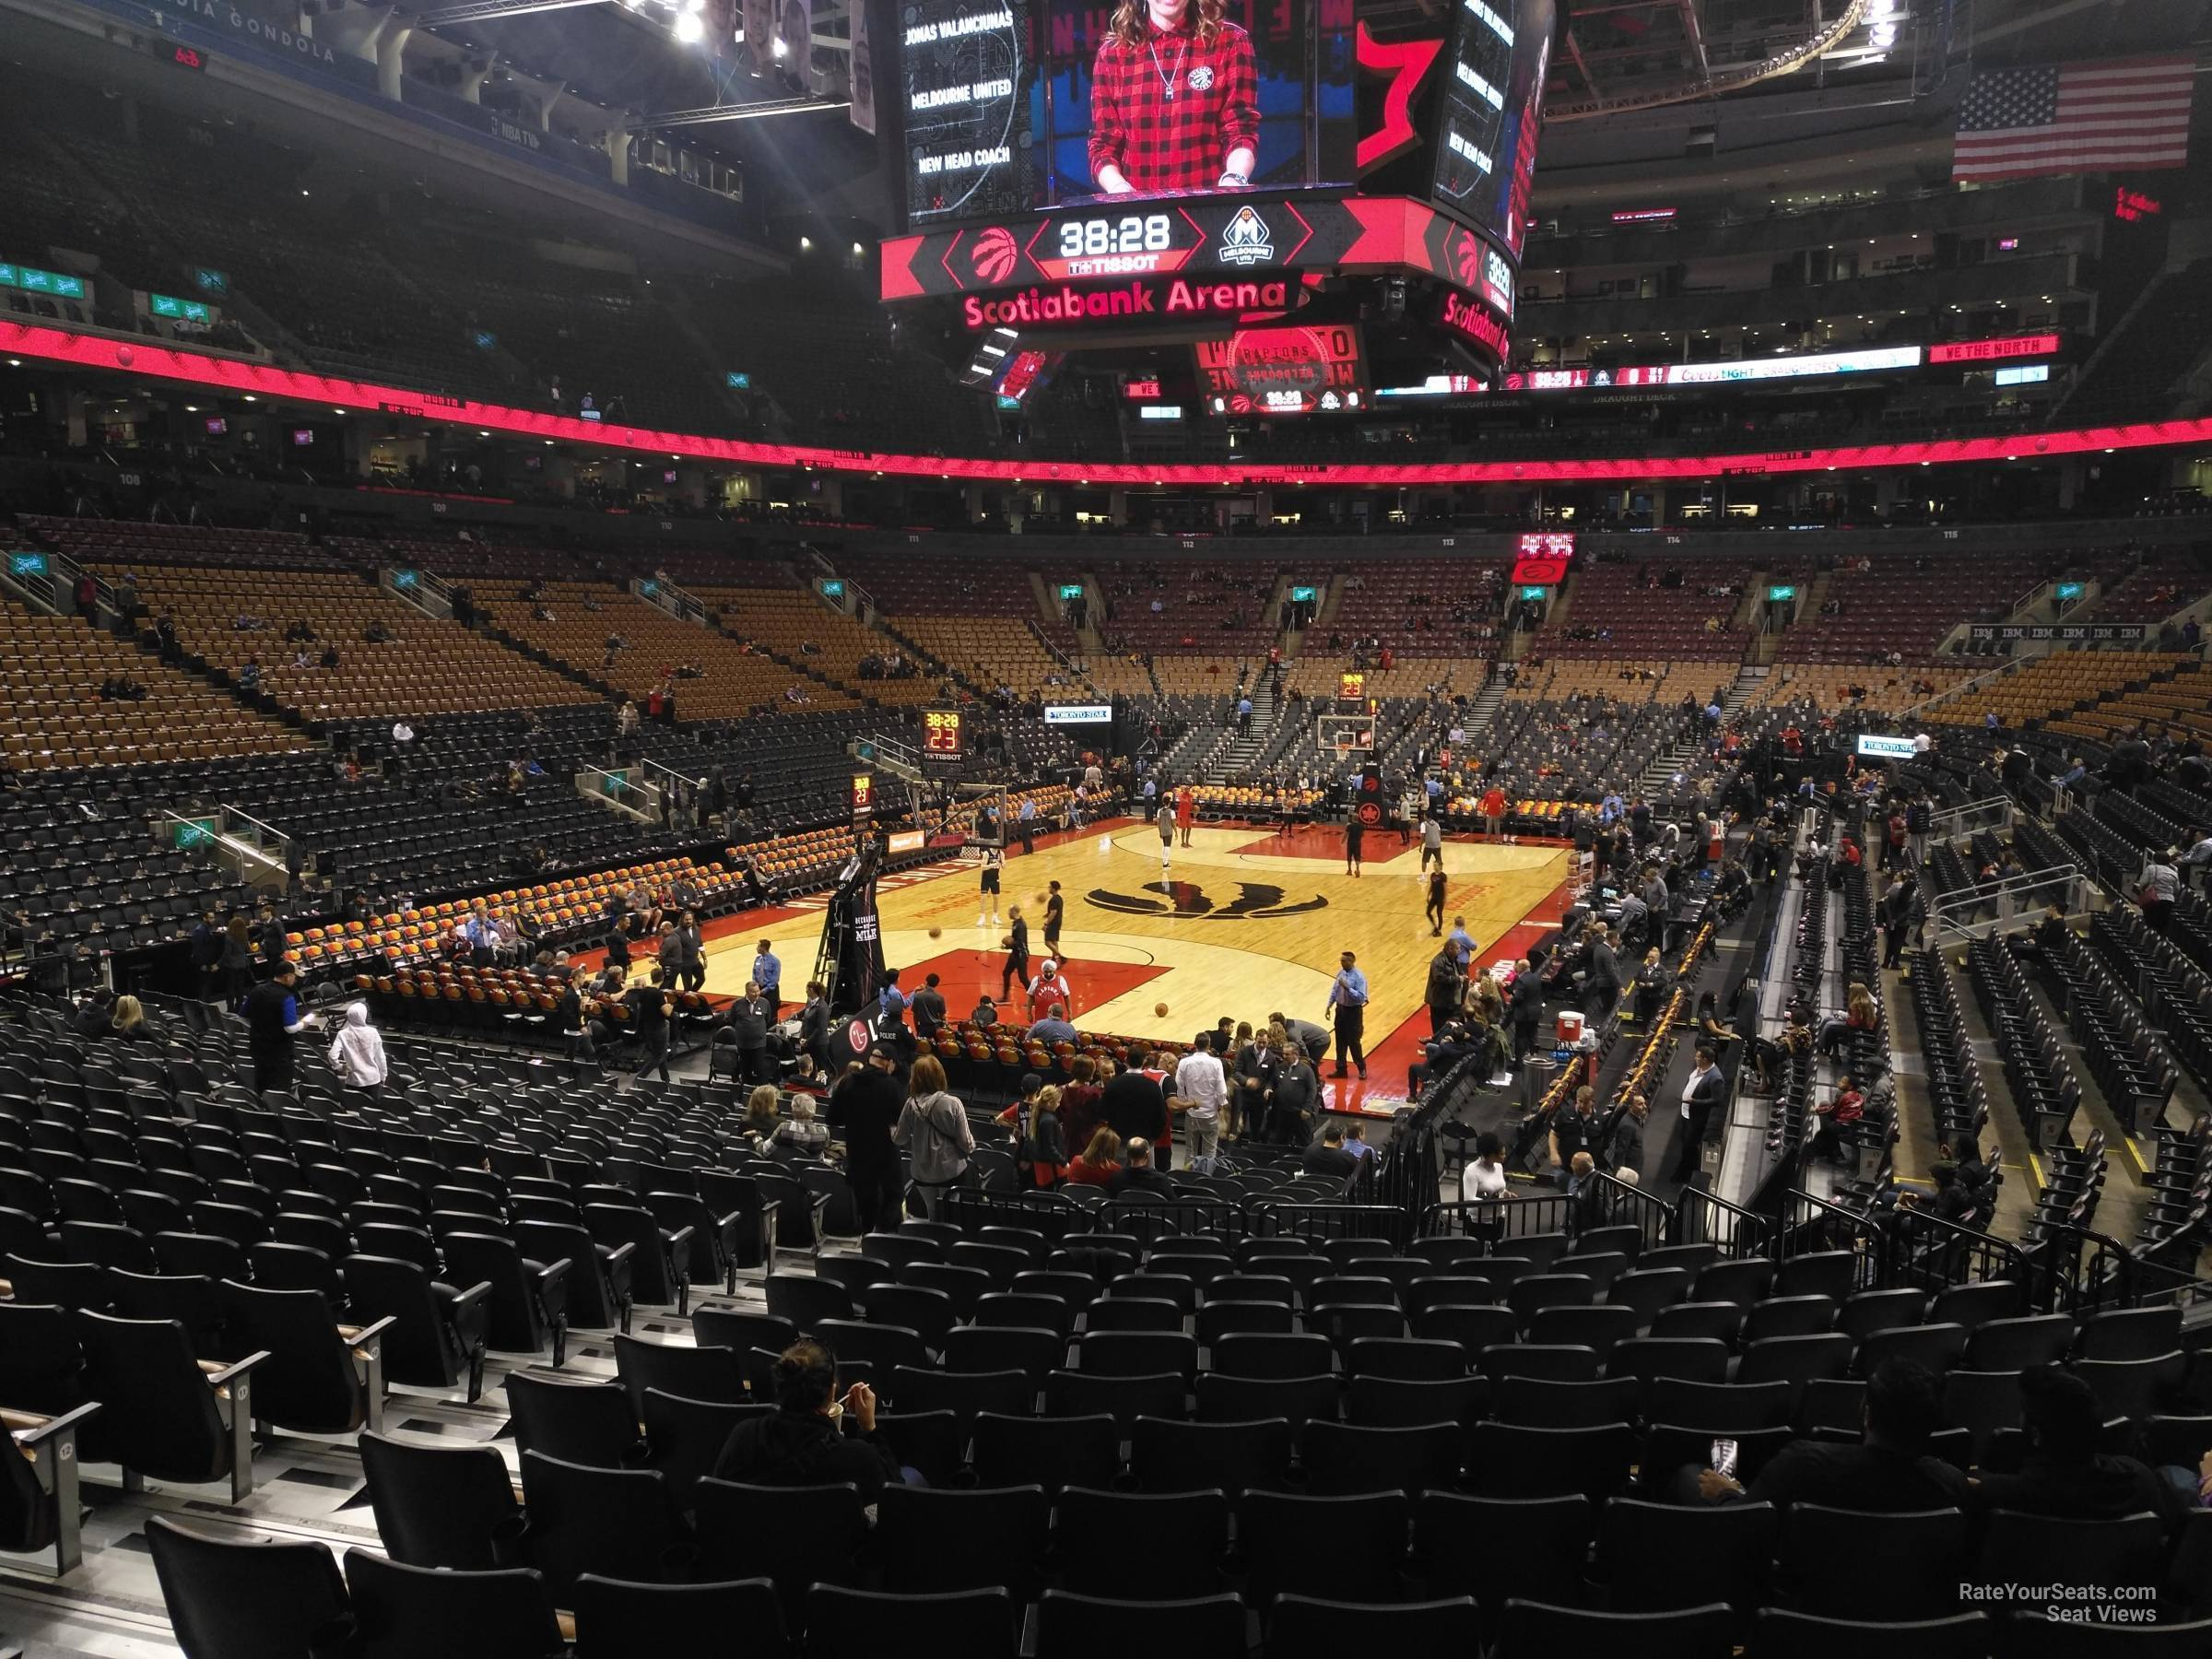 Toronto Raptors Seat View for Scotiabank Arena Section 101, Row 28